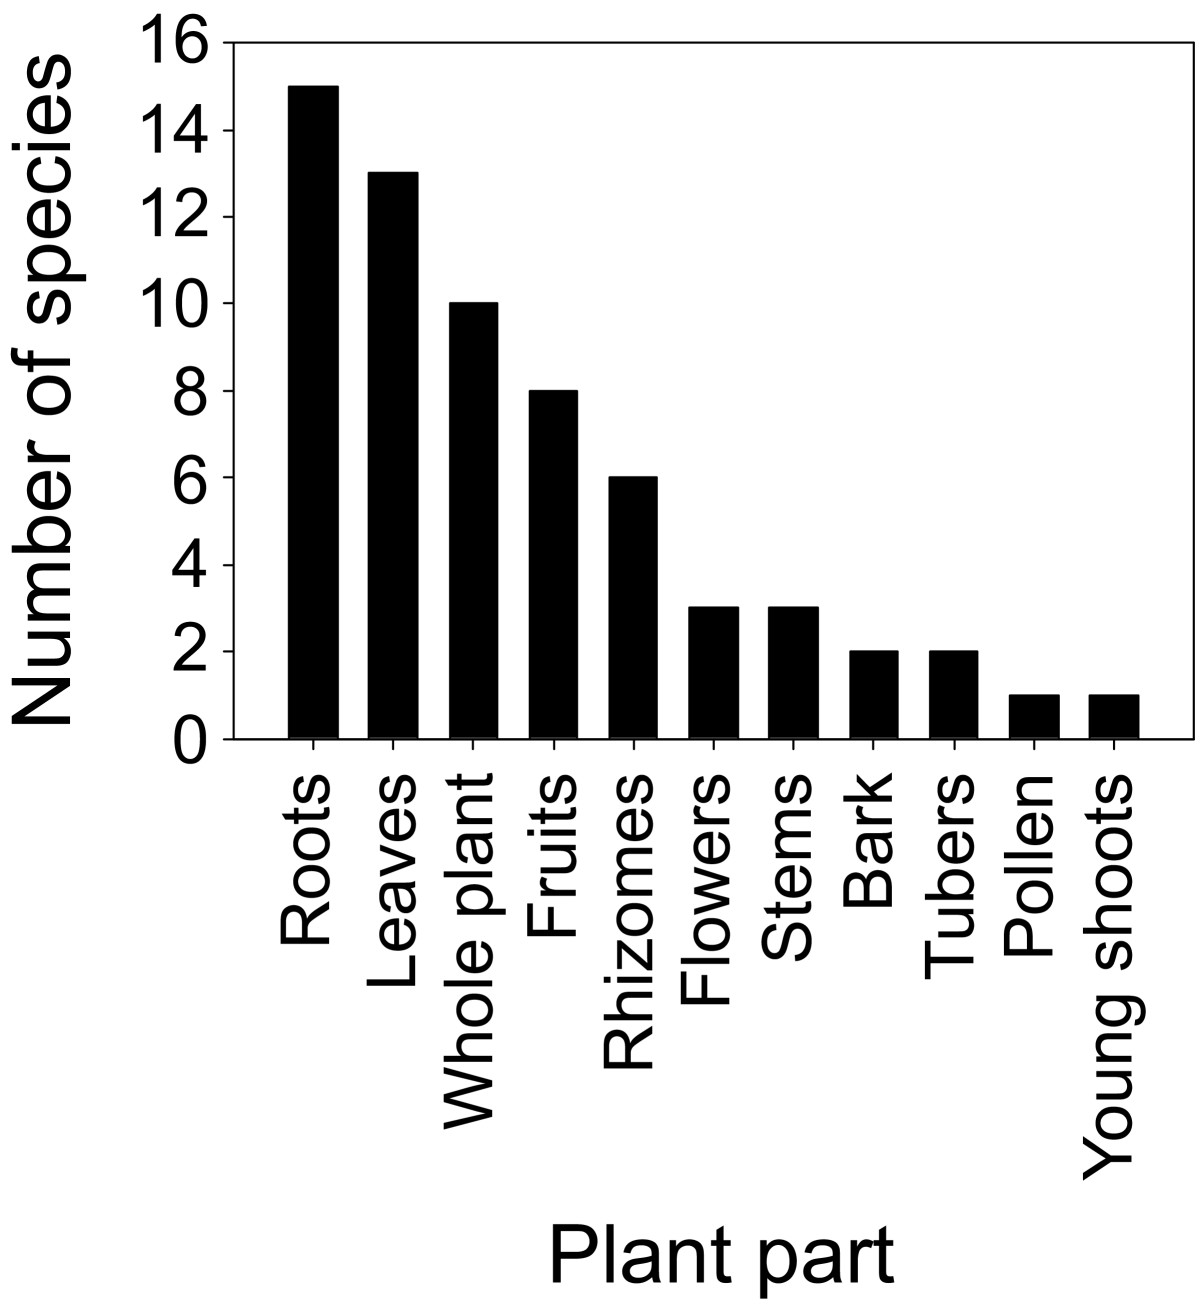 http://static-content.springer.com/image/art%3A10.1186%2F1746-4269-6-3/MediaObjects/13002_2009_Article_176_Fig4_HTML.jpg